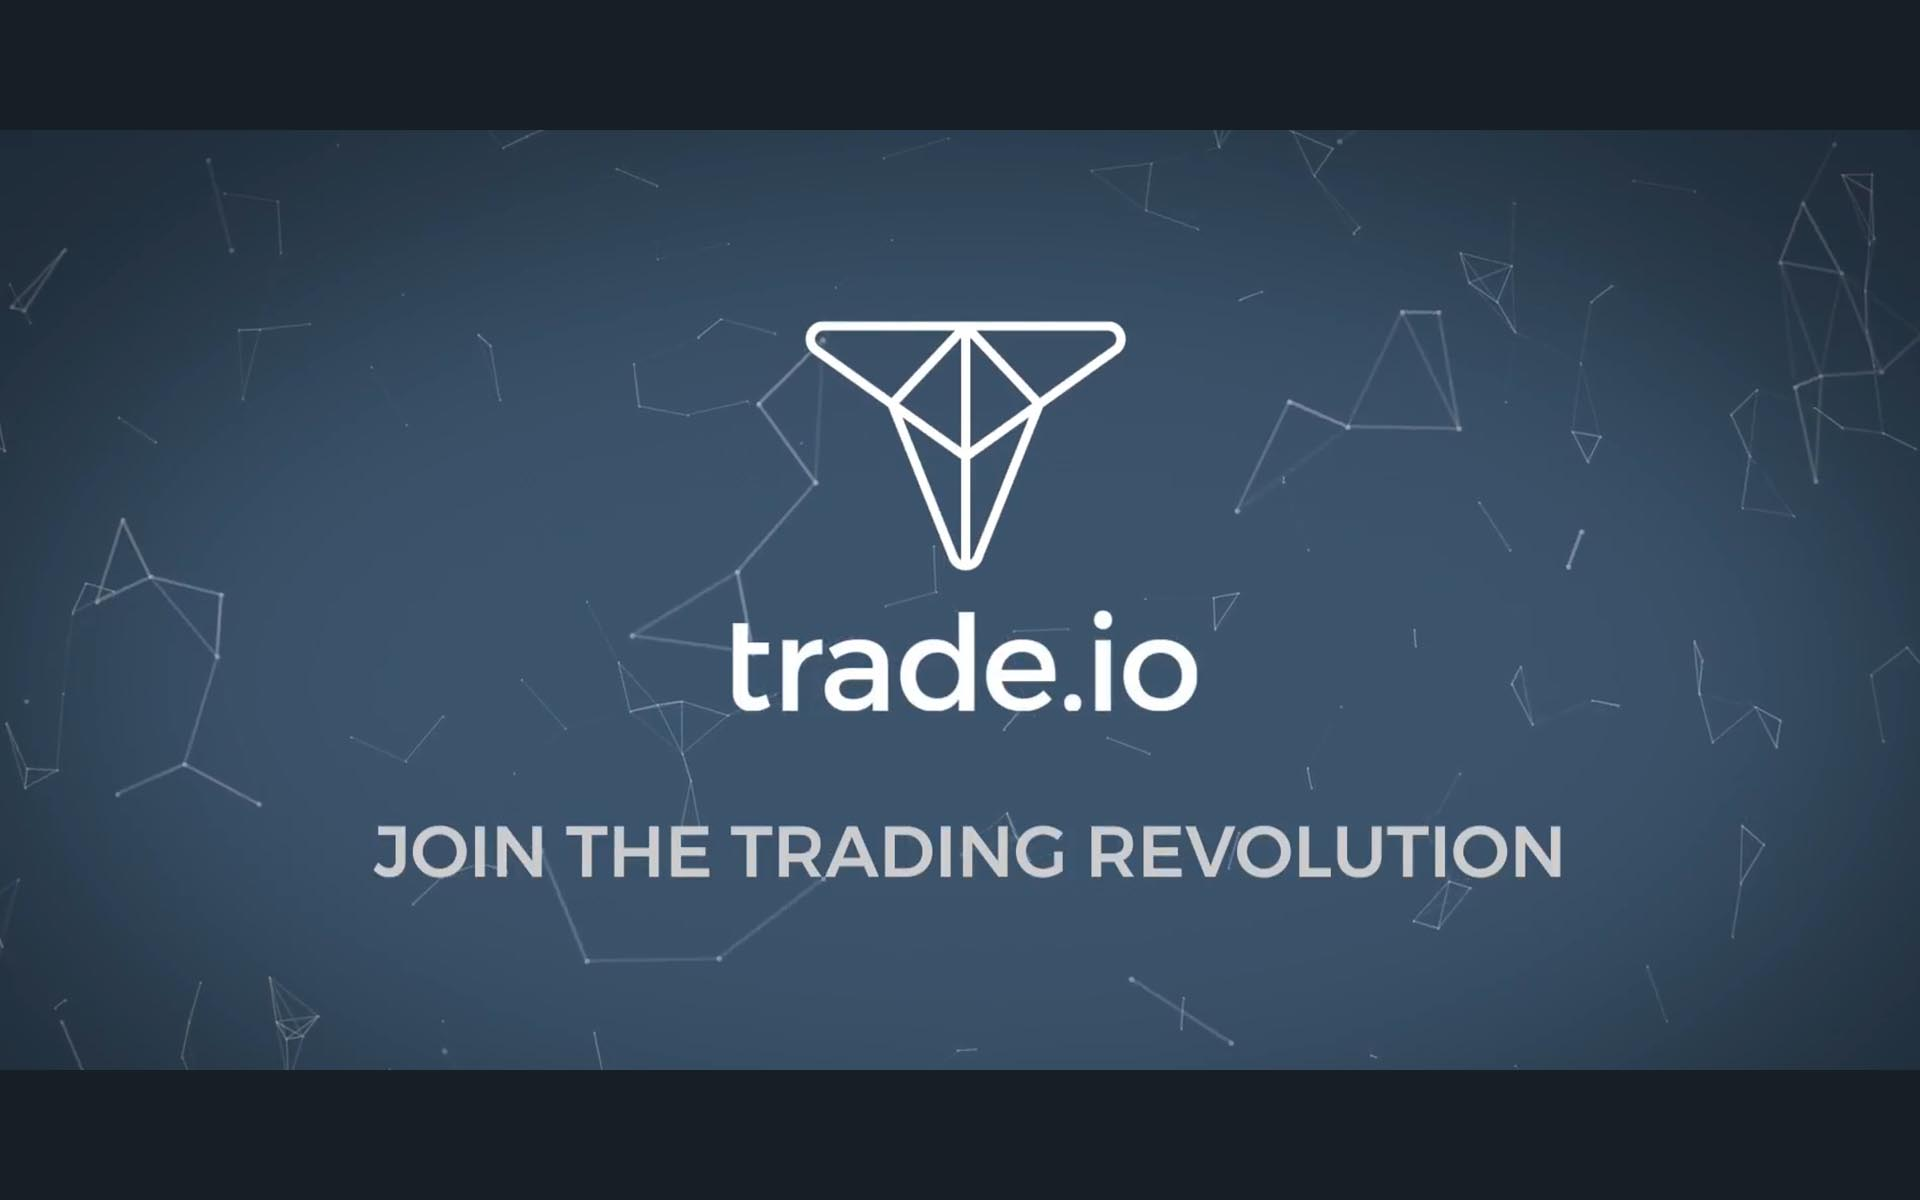 Trade.io Adjusts Market Cap & Trade Token Price Based On The Rise in Ethereum And Demand for Lower Entry Point